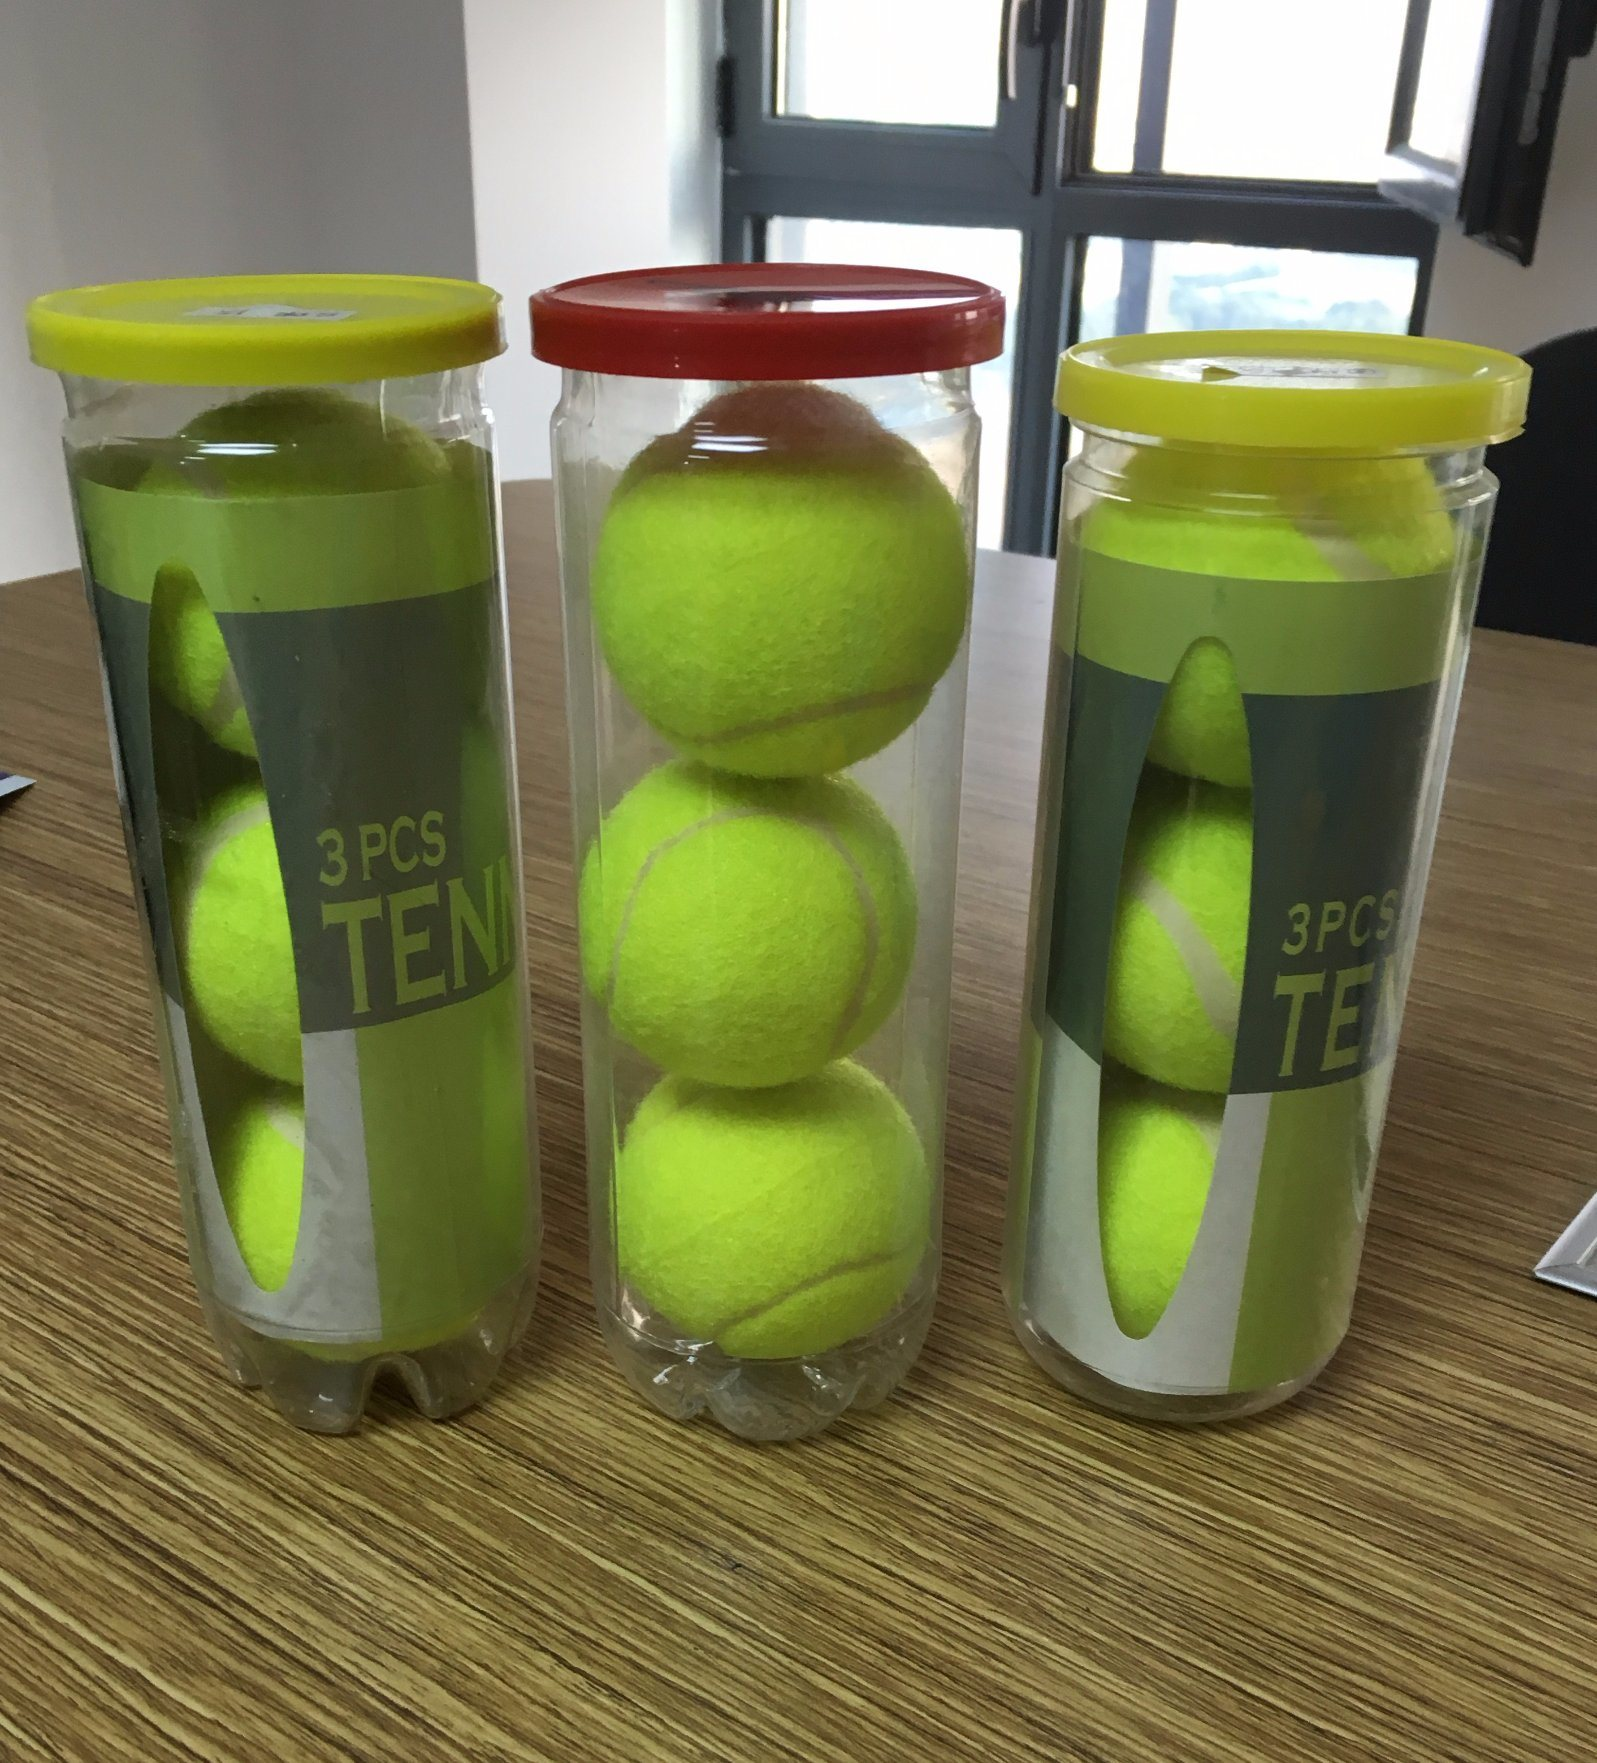 High Quality 3PCS Tin Packing Tennis Ball